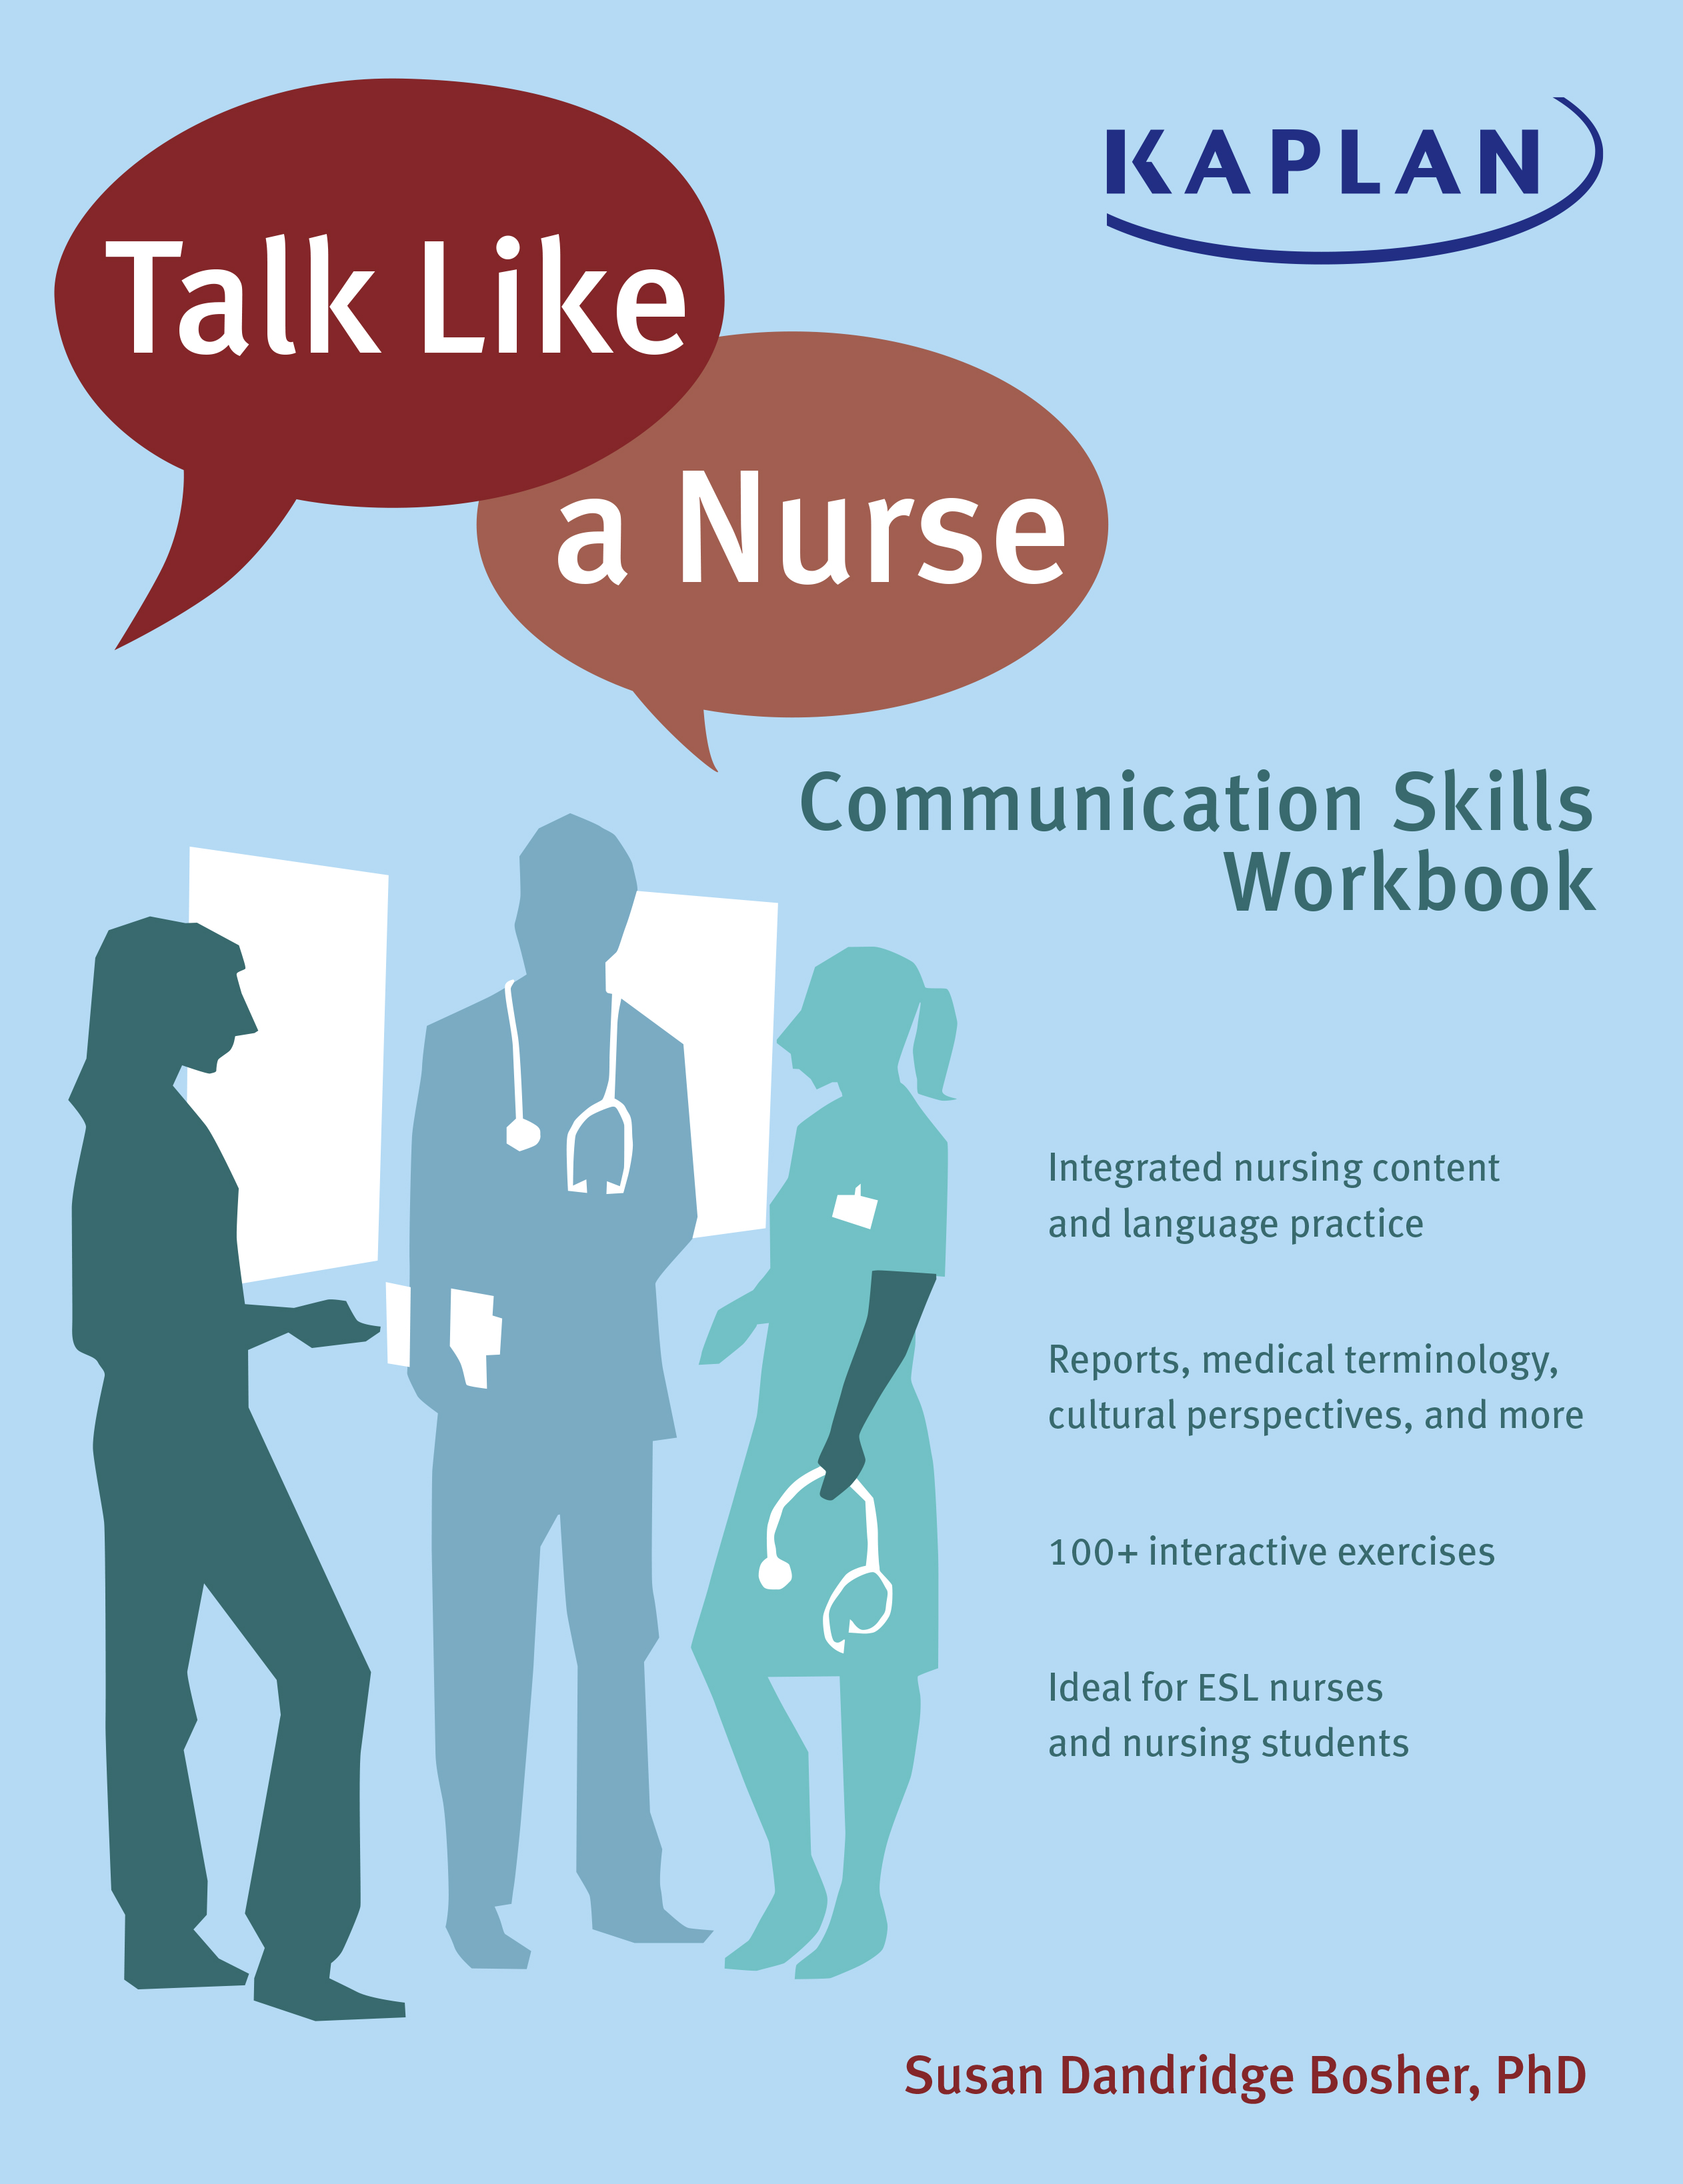 Nurse communication skills essay